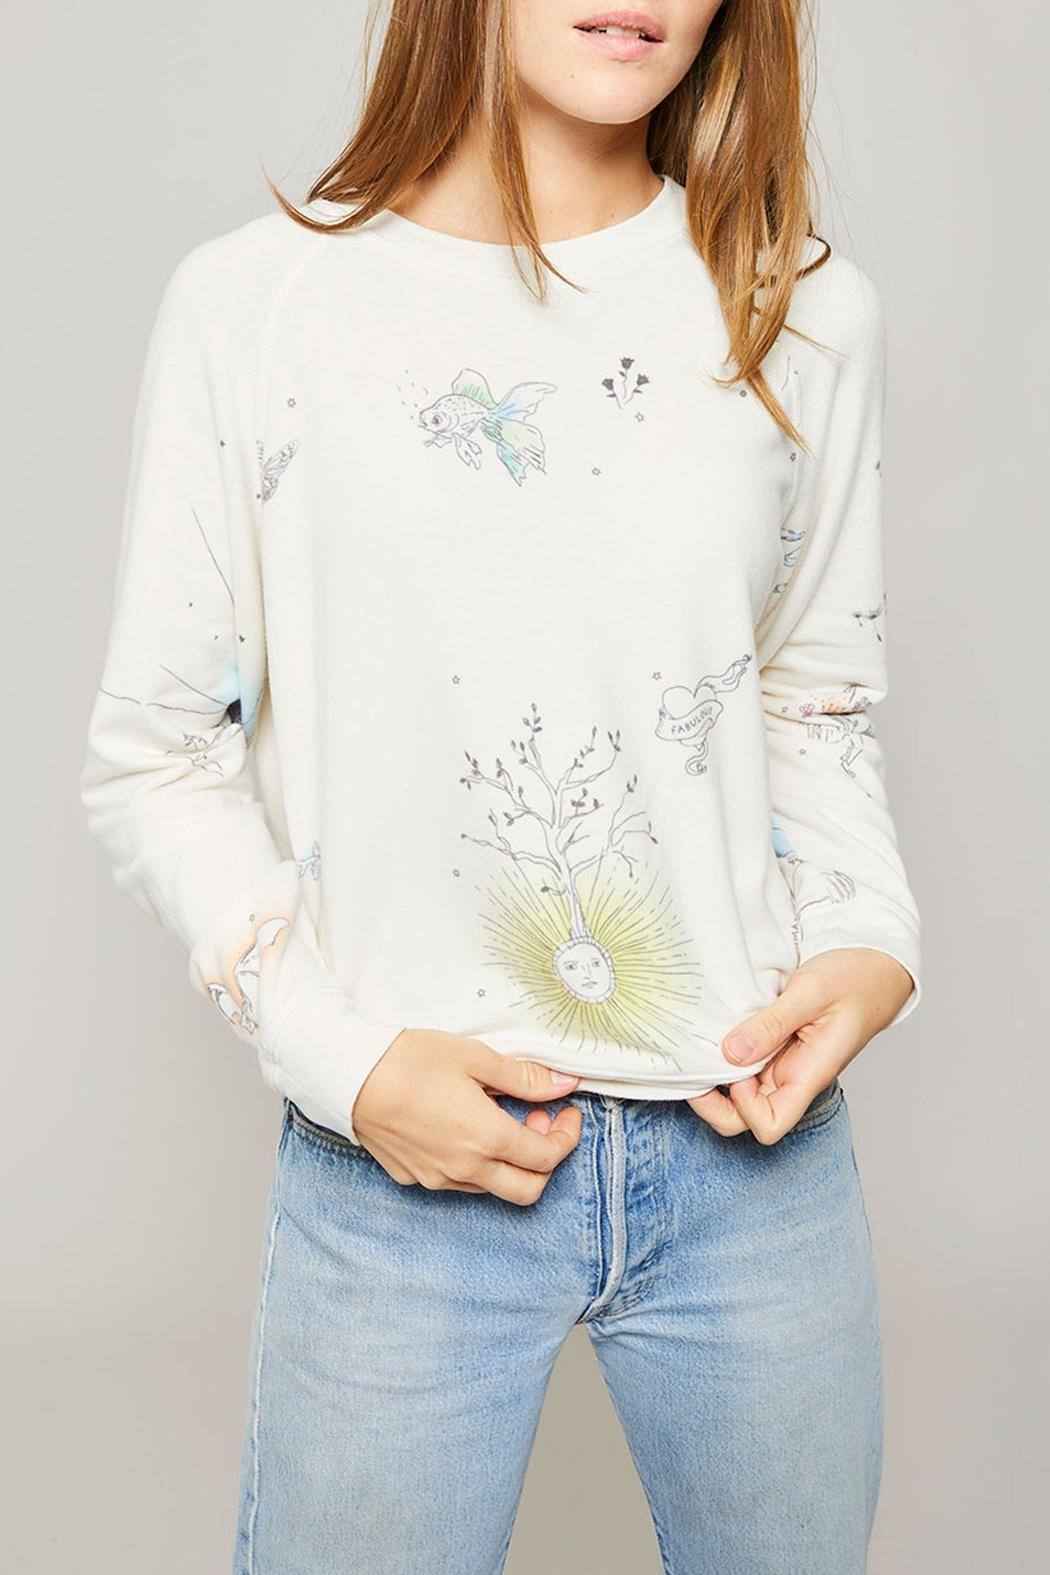 All Things Fabulous Catalina Raglan Sweater - Back Cropped Image